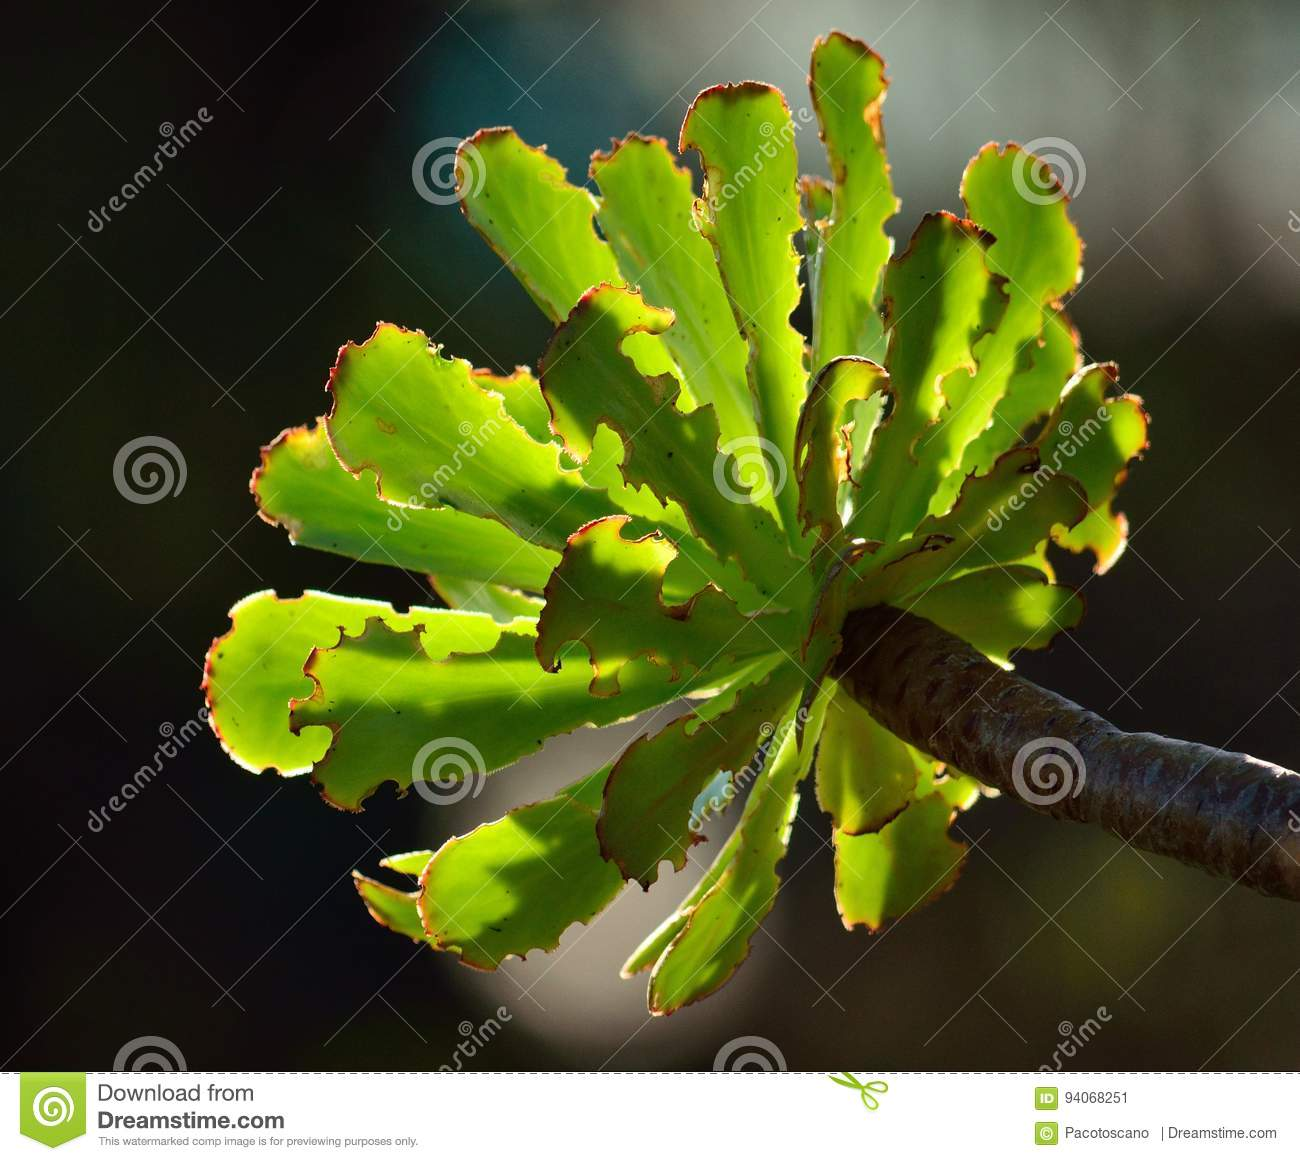 Green rosette of aeonium